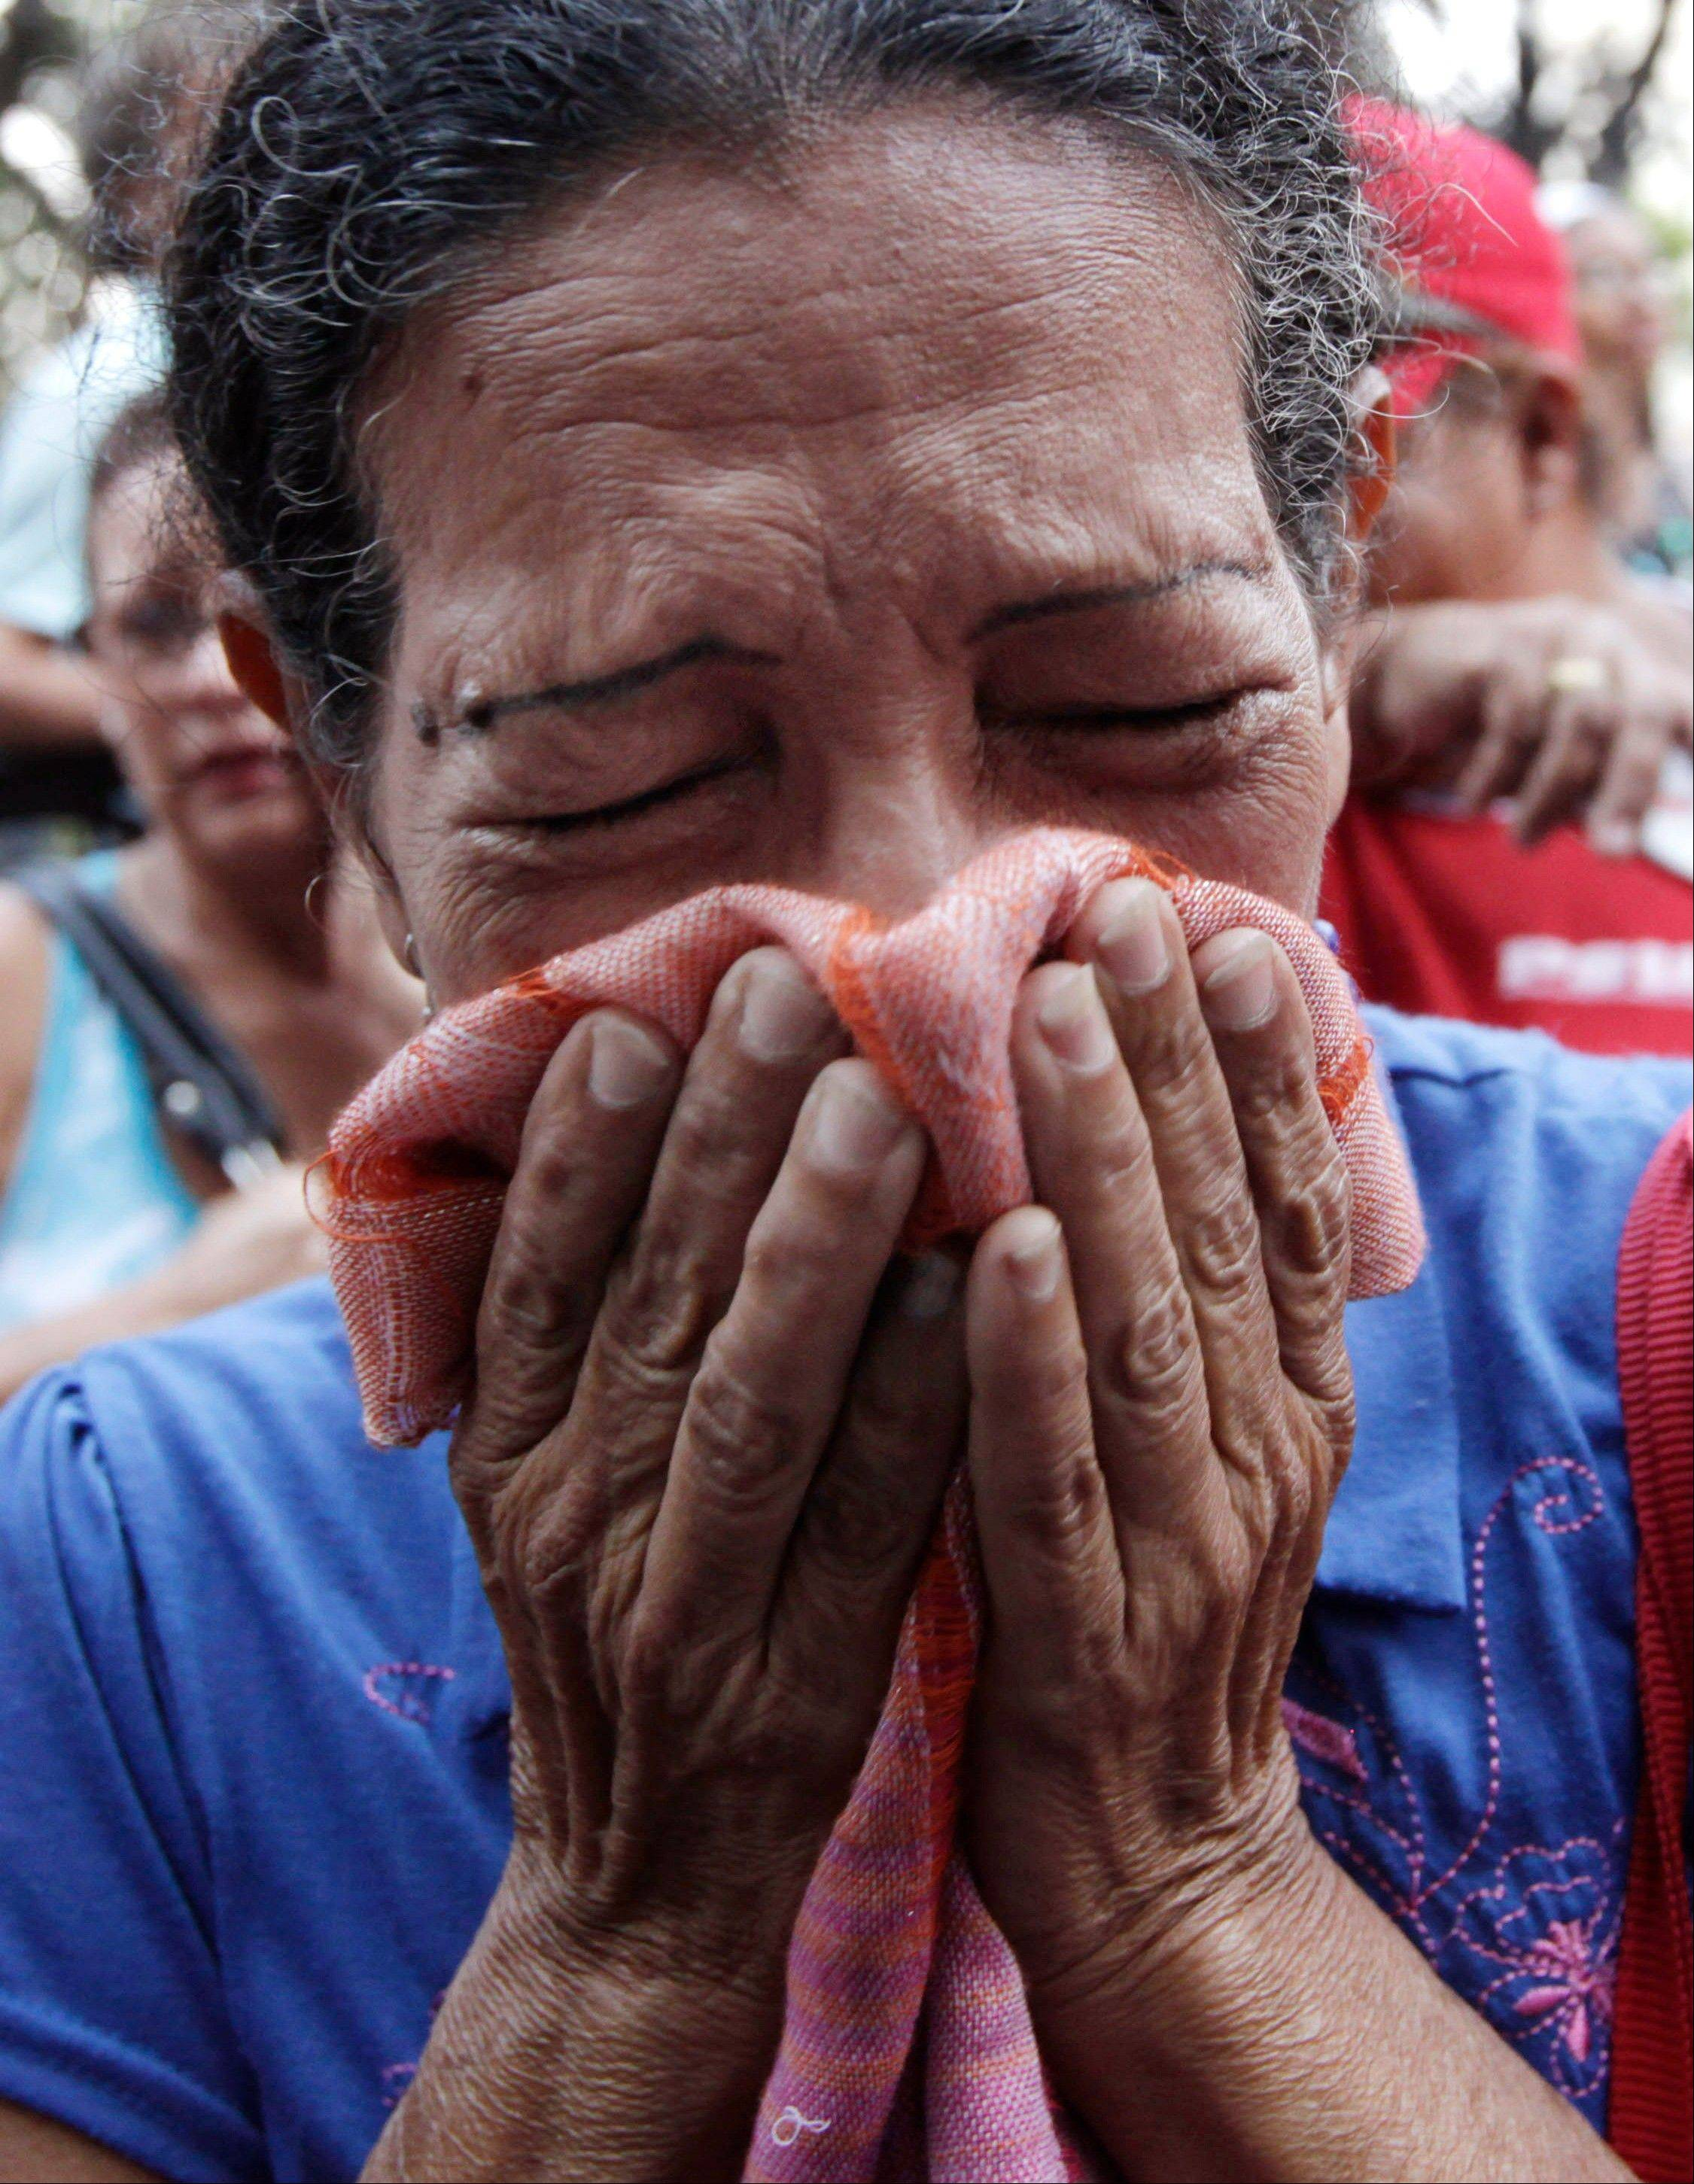 A supporter of Venezuela's President Hugo Chavez cries as she learns that Chavez has died through an announcement by the vice president in Caracas, Venezuela.